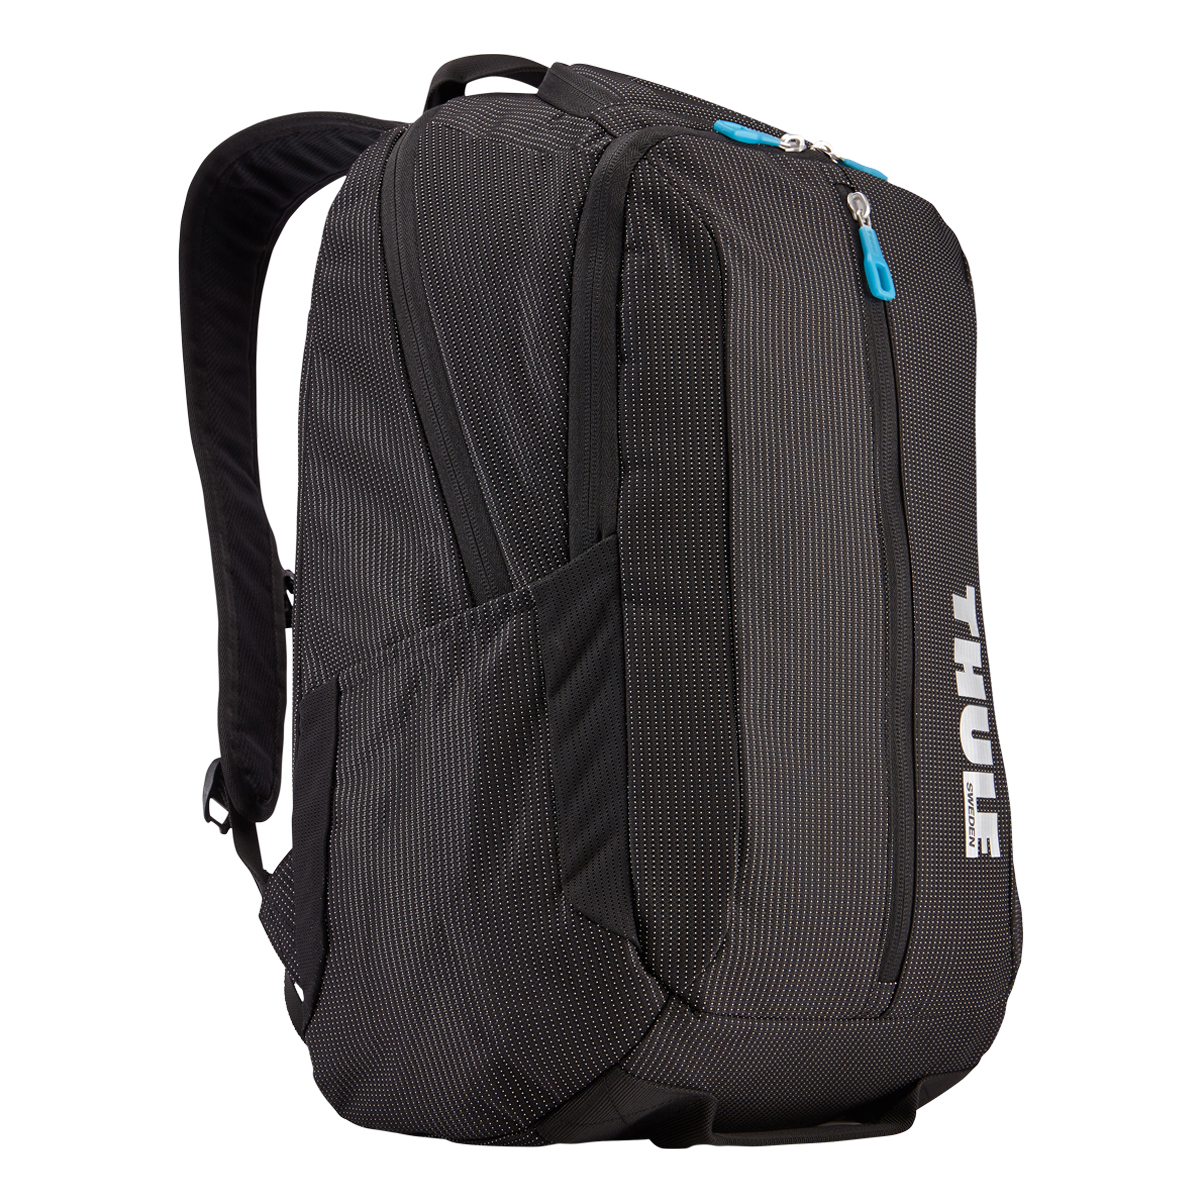 THULE スーリー バックパック TCBP-317 ブラック 【 Crossover 25L Backpack 】【 リュック デイパック バッグ 15インチノートパソコン収納 】 【 リュックサック 】[PO10][bef][即日発送]